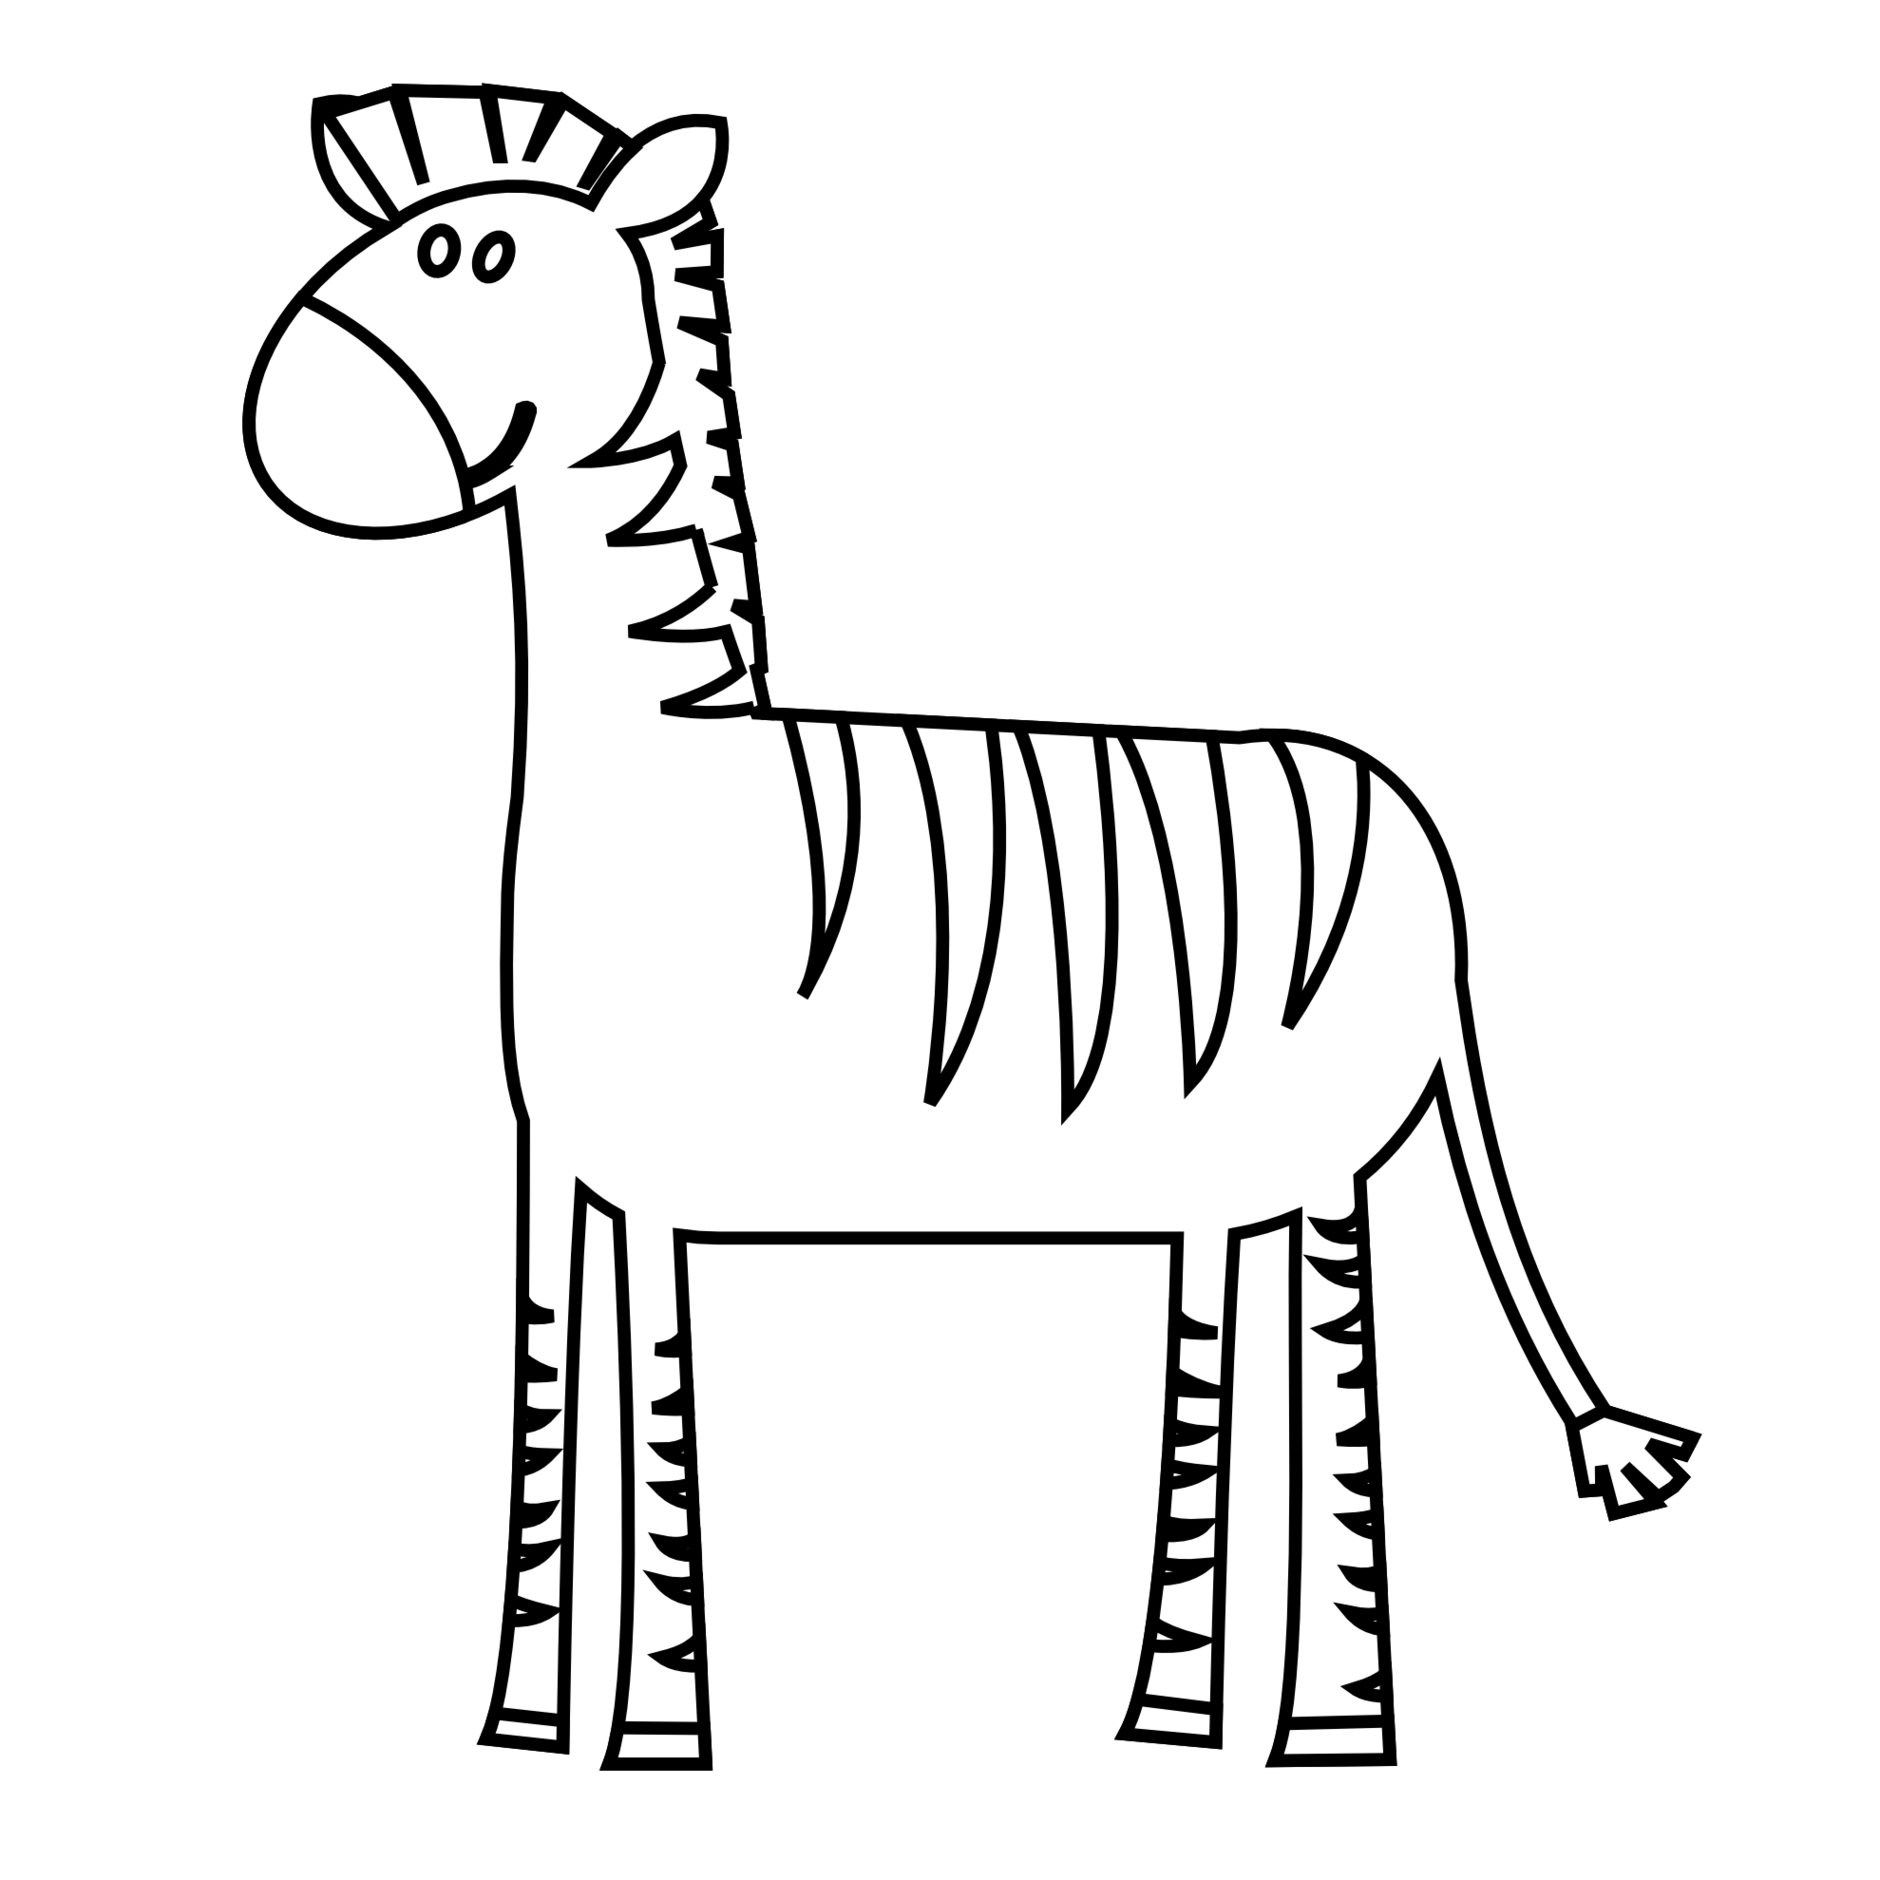 Zebra simple clipart clipart royalty free library Free Zebra Clipart Black And White, Download Free Clip Art ... clipart royalty free library